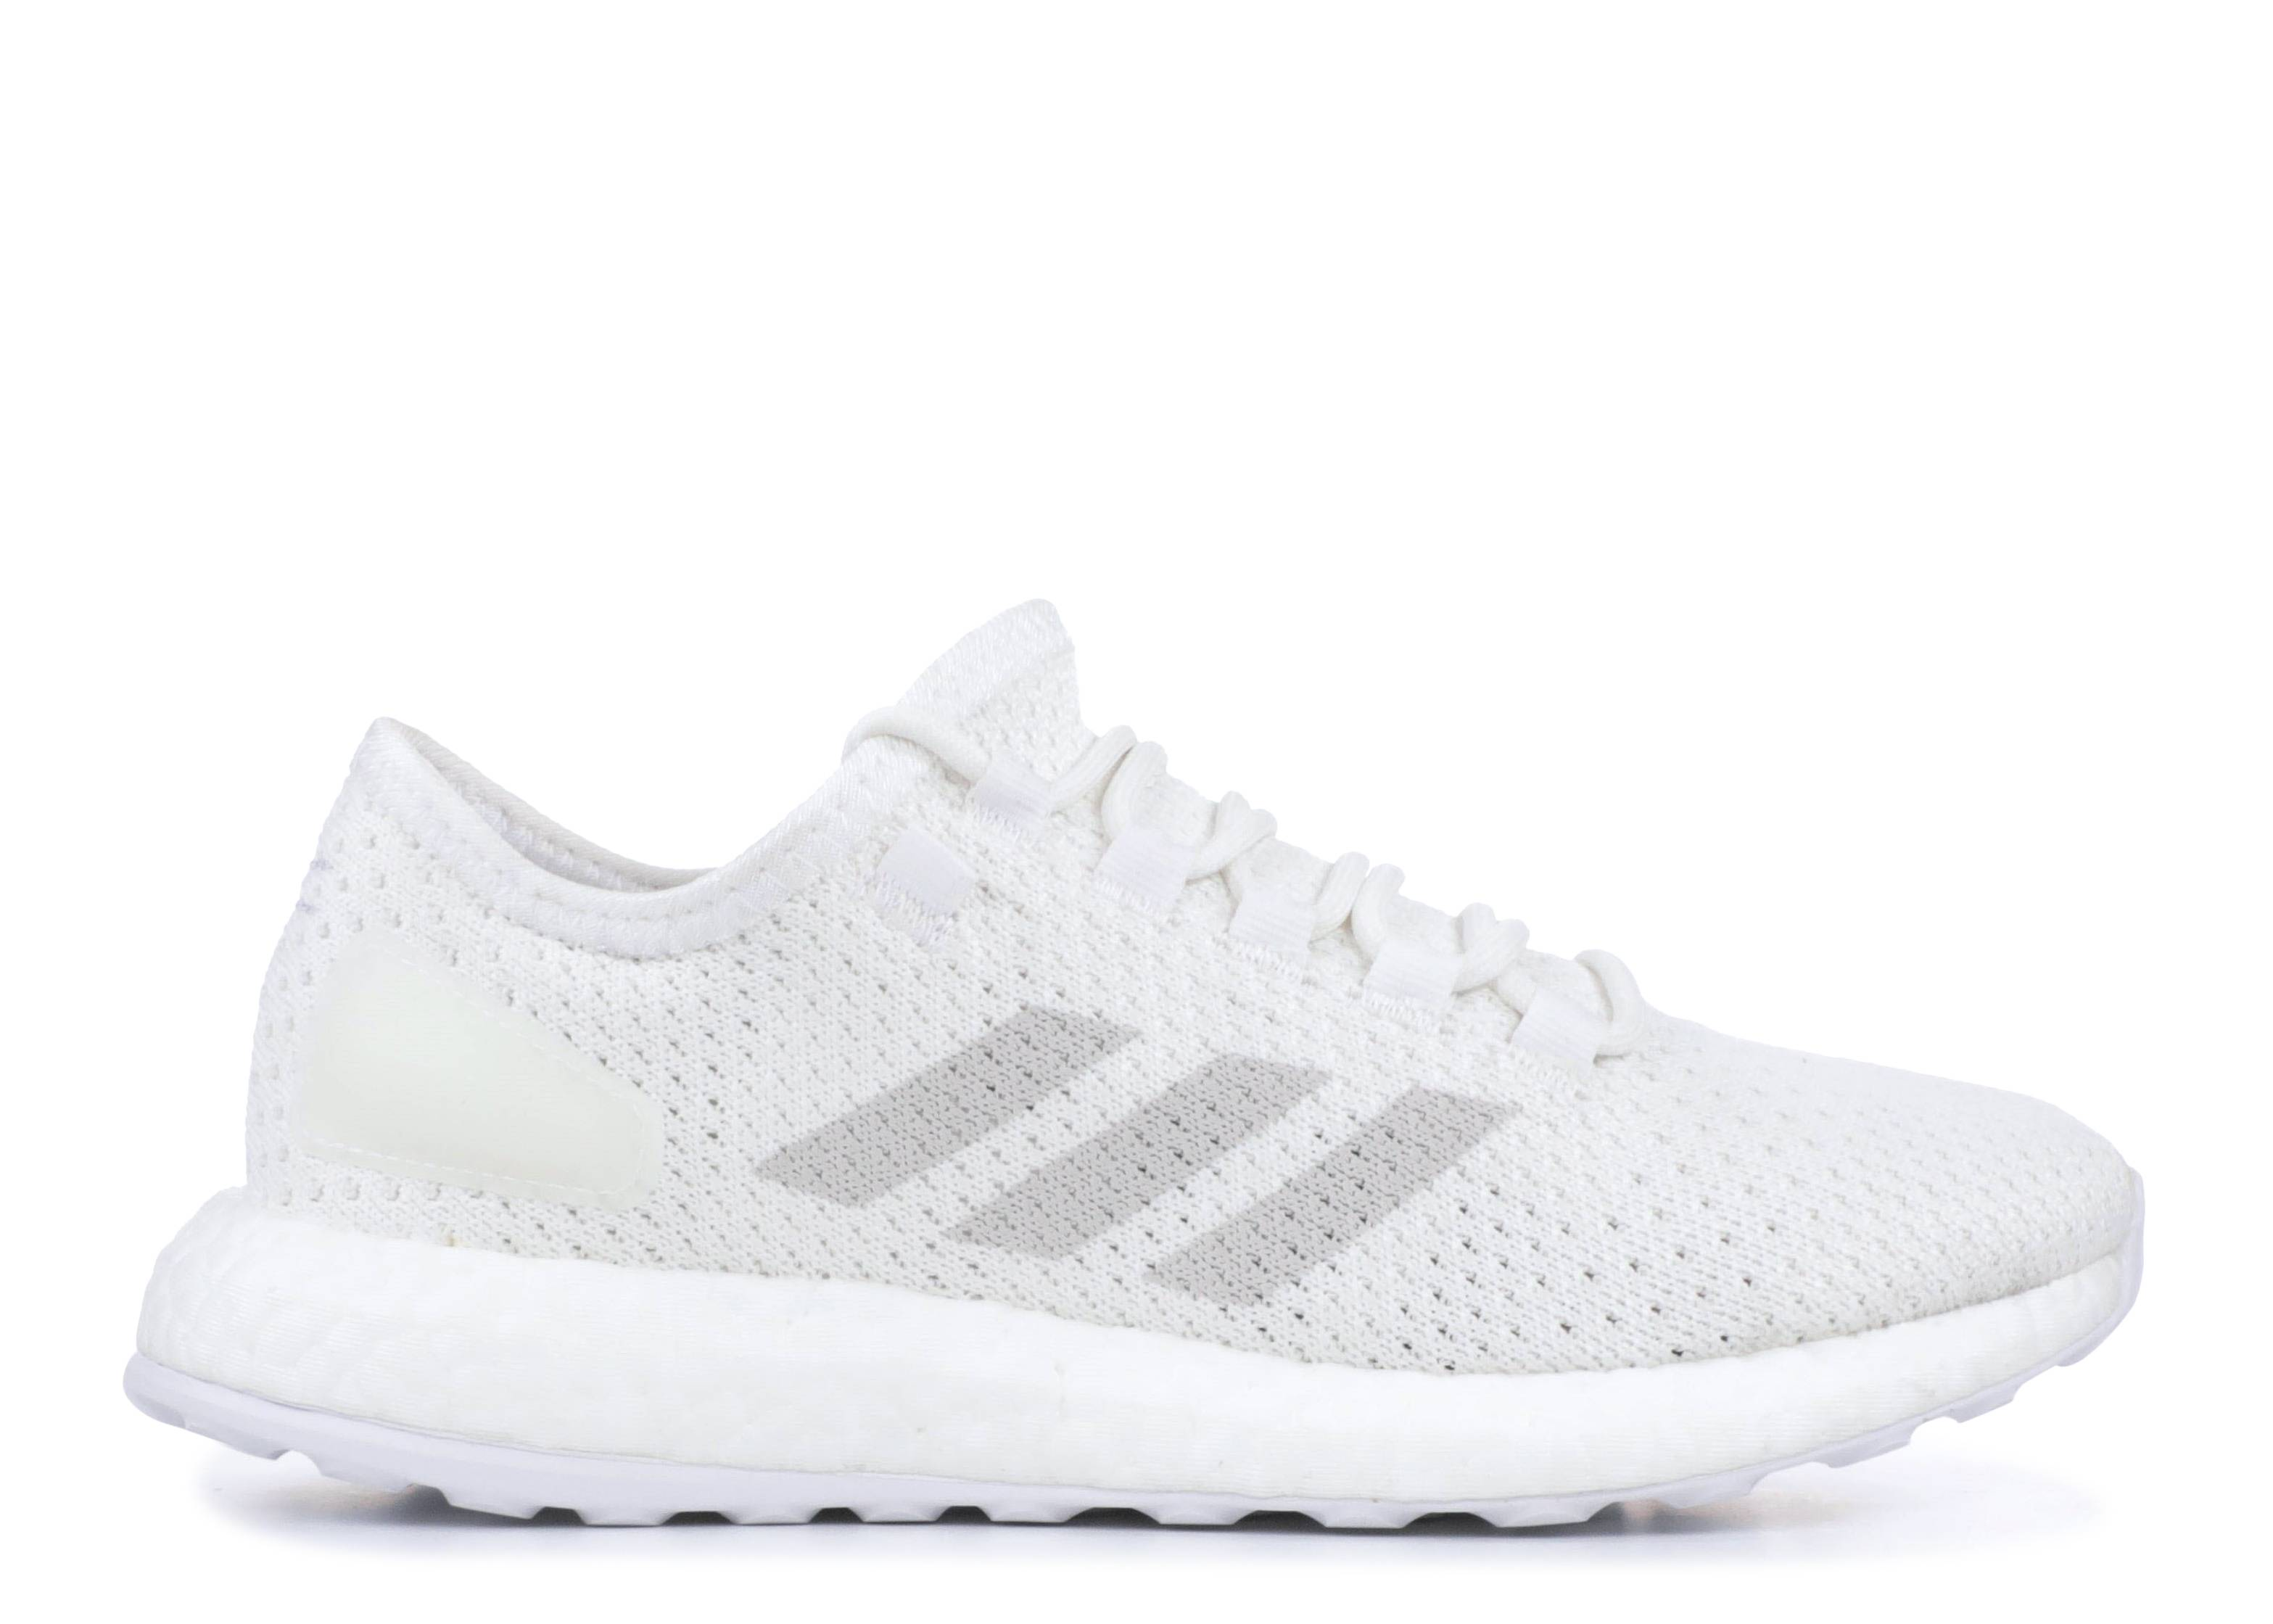 88184609a2ae7 Pureboost Clima - Adidas - by8897 - cloud white grey-crystal white ...